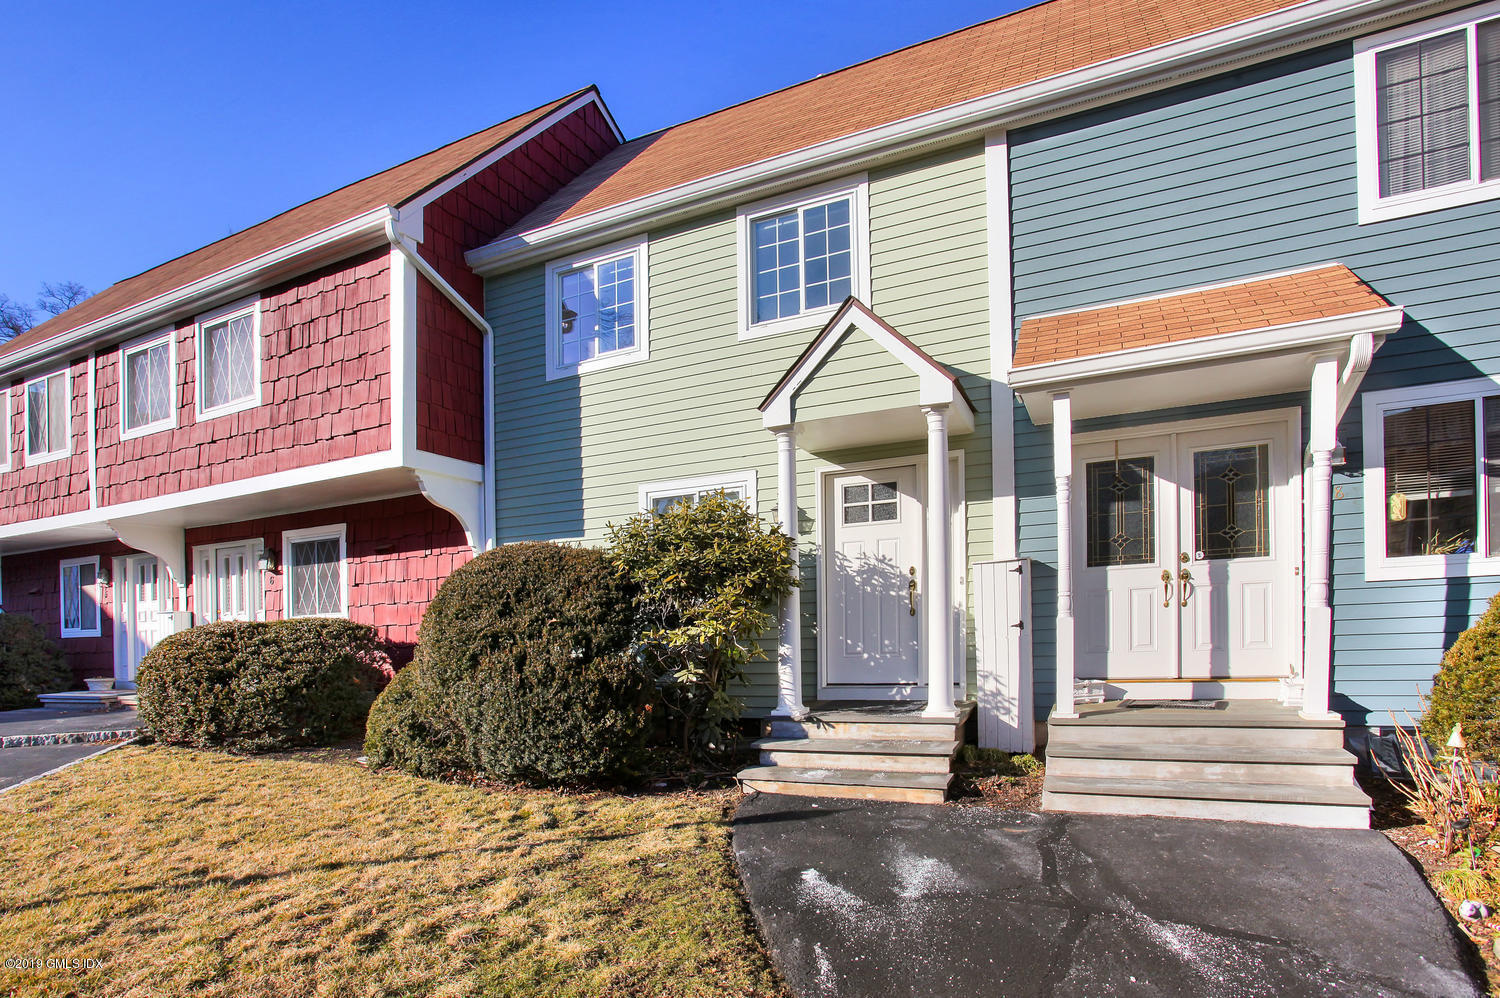 37 Sheephill Road,Riverside,Connecticut 06878,2 Bedrooms Bedrooms,2 BathroomsBathrooms,Condominium,Sheephill,105608